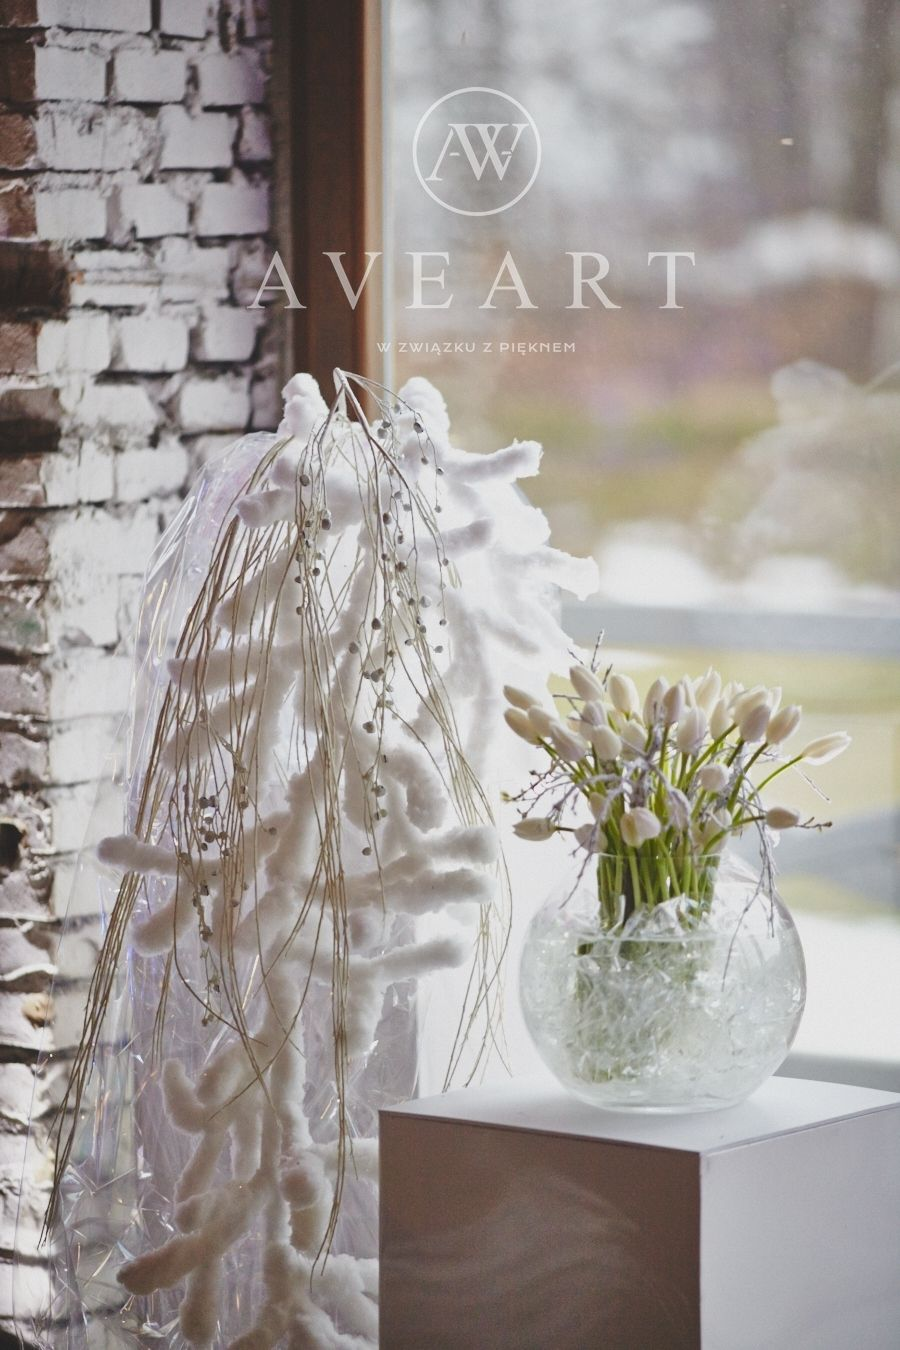 Winter wedding decorations by Aveart | Winter wedding decorations ...